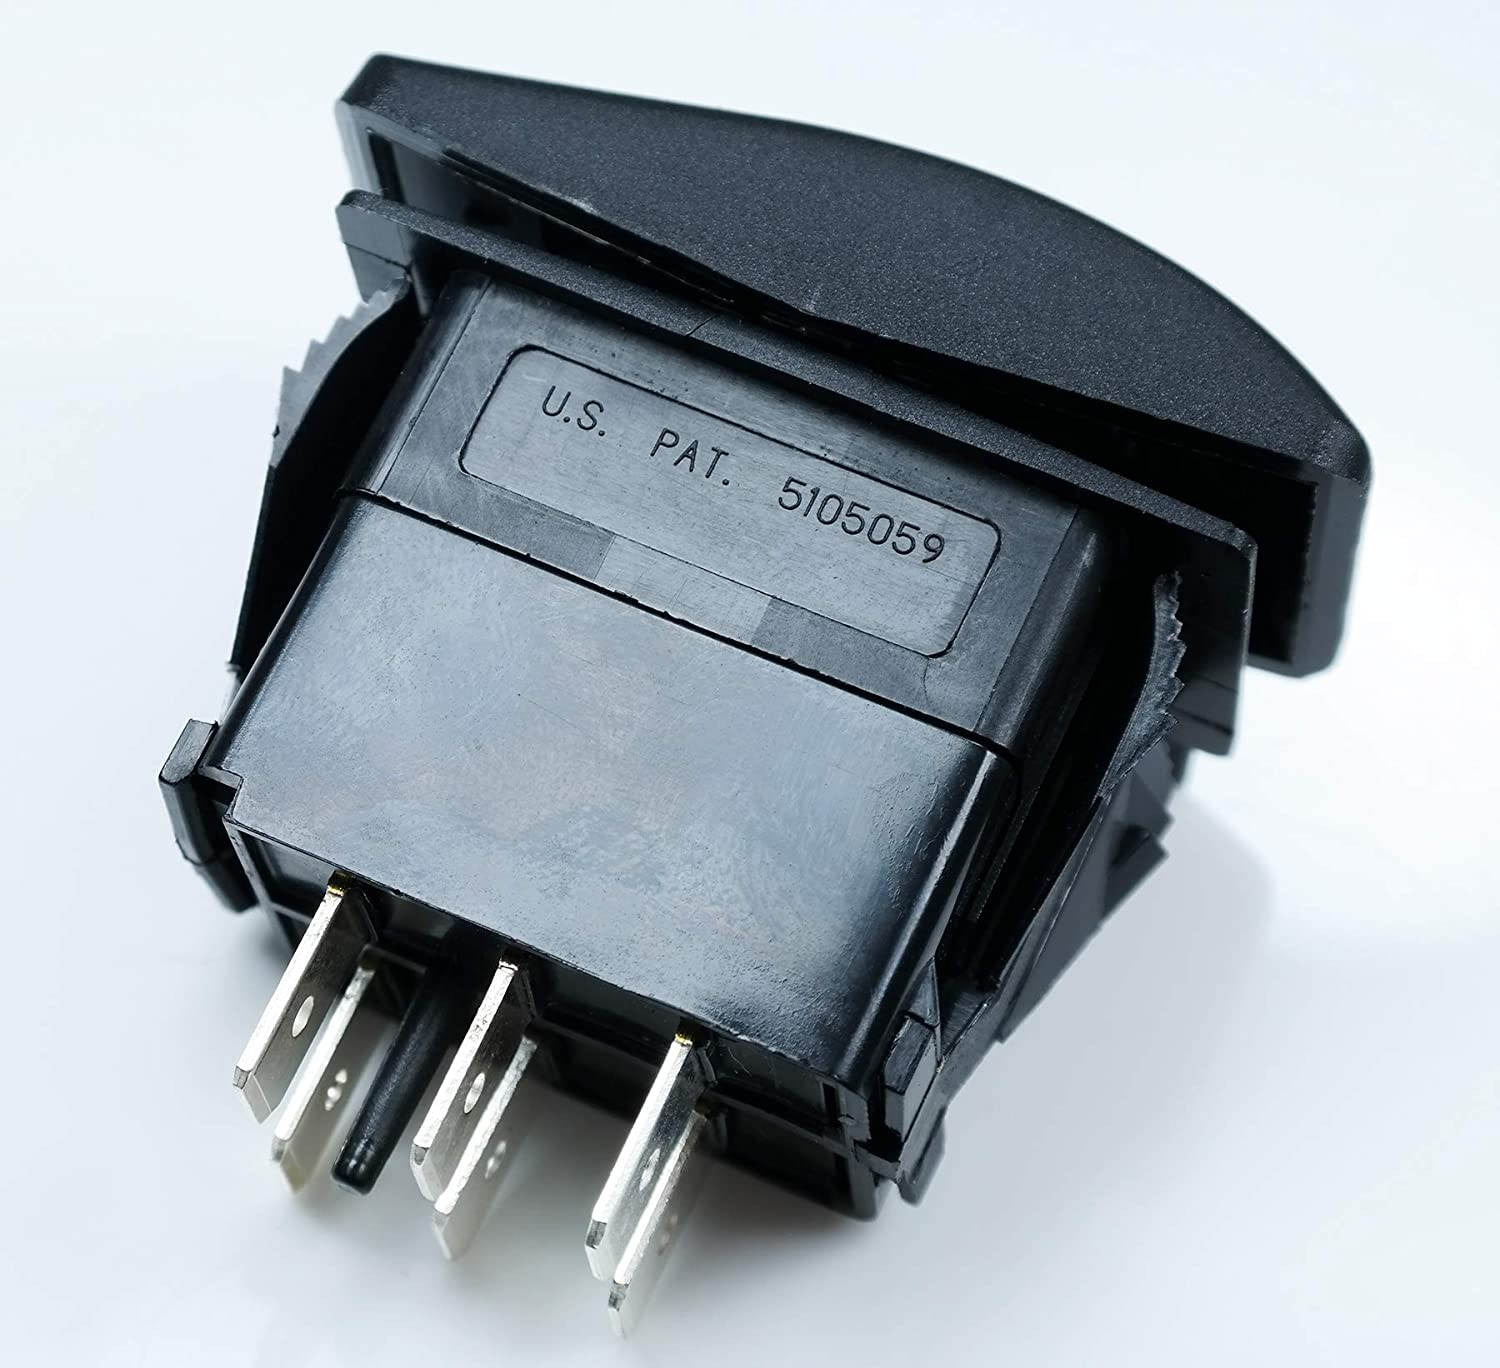 Rocker Switches DP VLD1S00B-AZC00-000 ON 20A 12V SEALED Non-il ON 2x Carling Technologies OFF